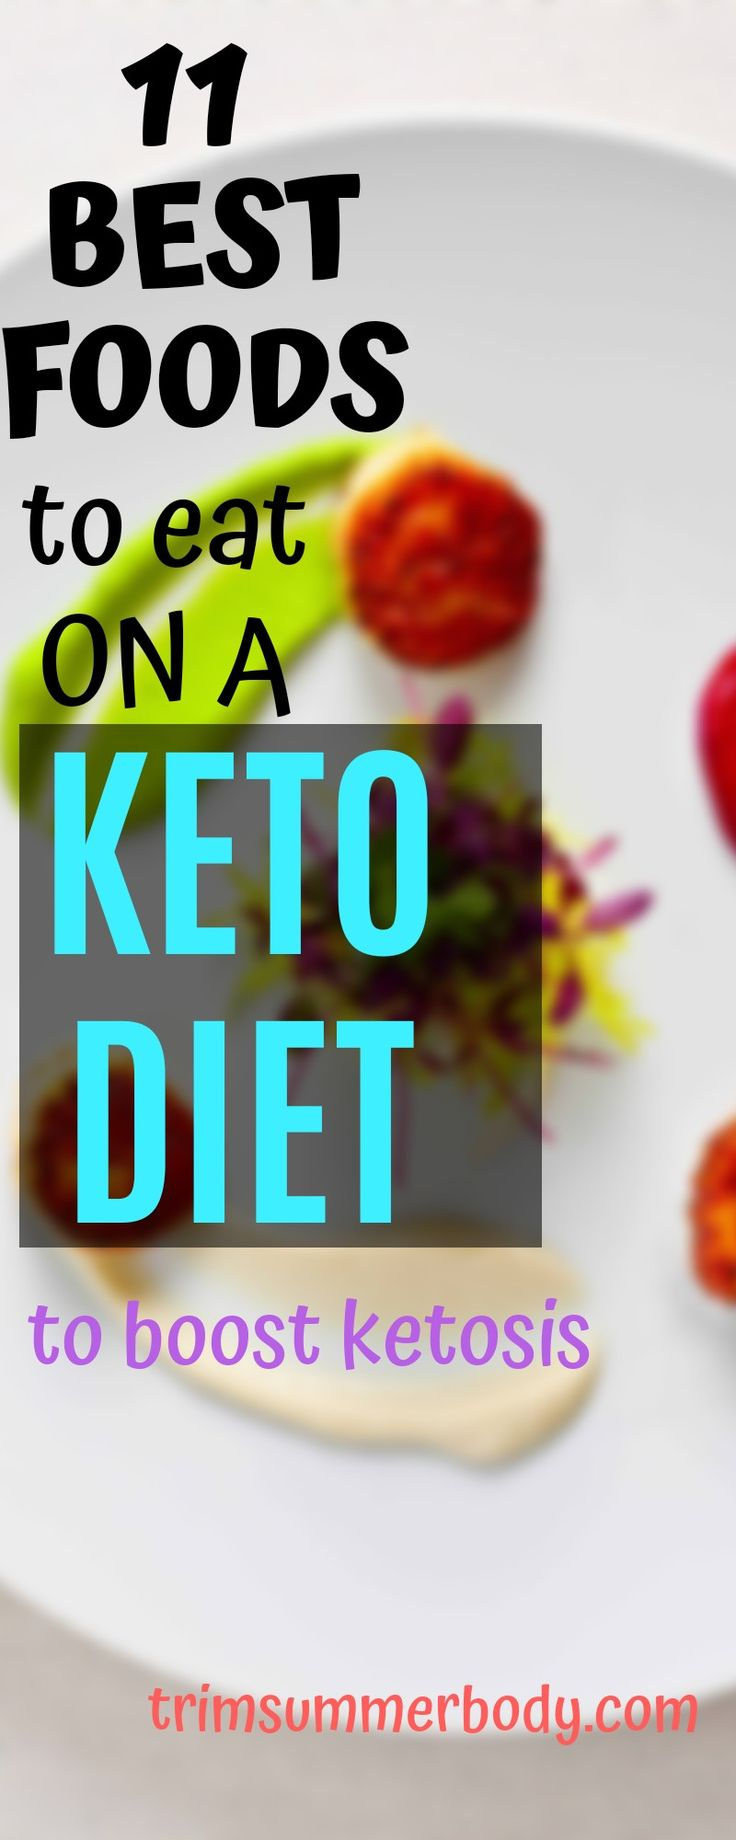 Foods to eat on a ketogenic diet | food list